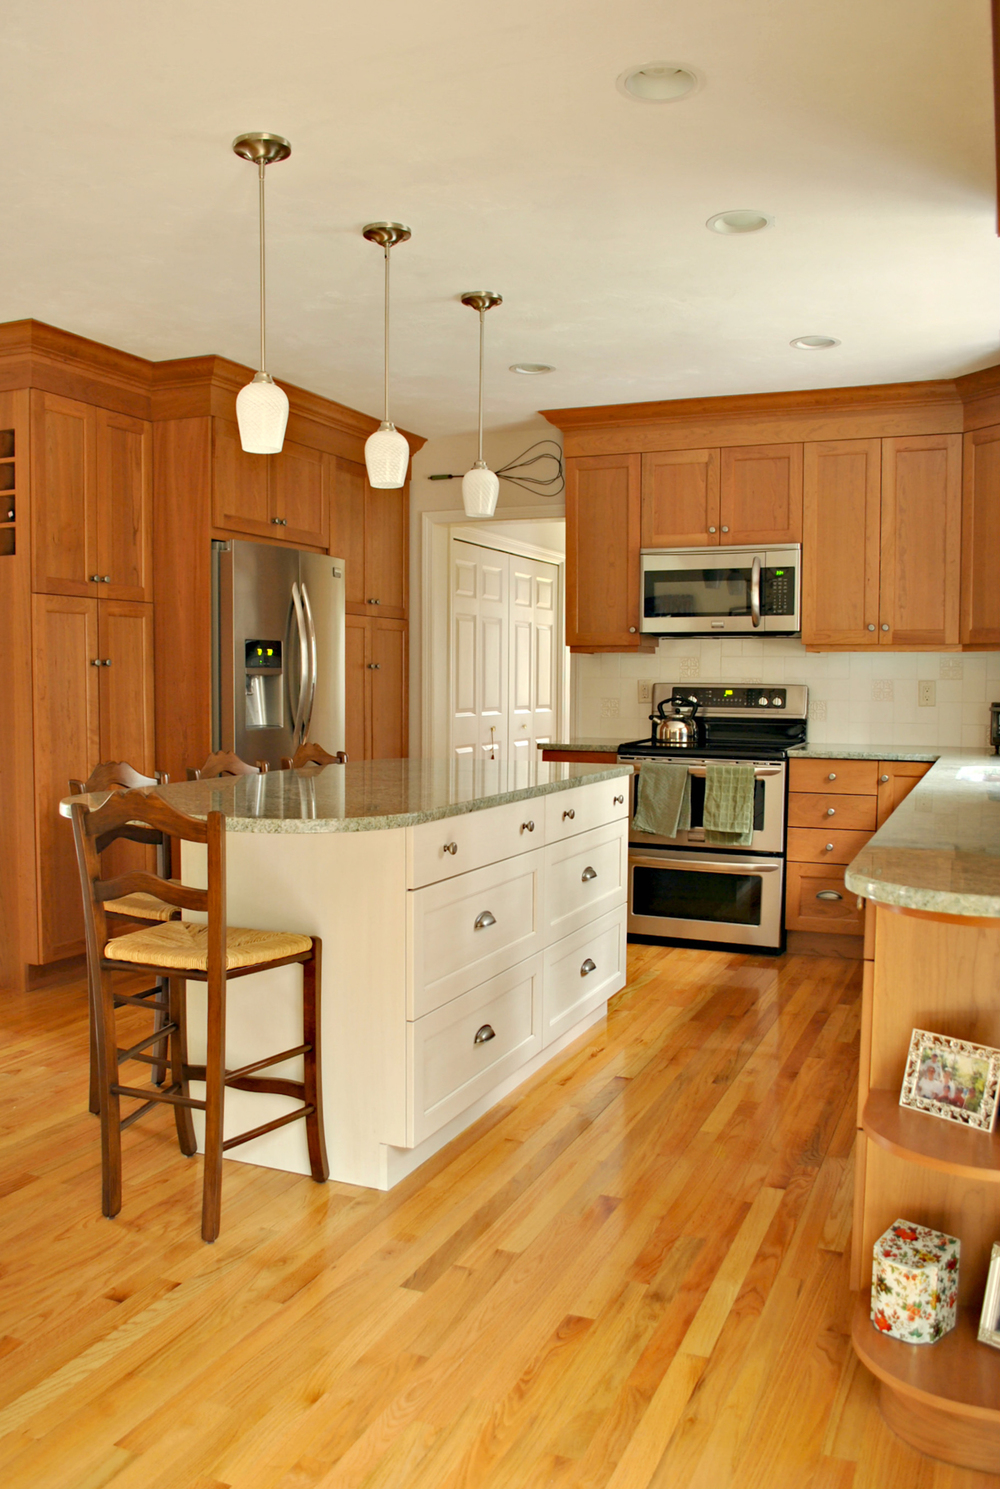 kitchens by design sterling ma sterling ma 3 kitchen associates massachusetts 631